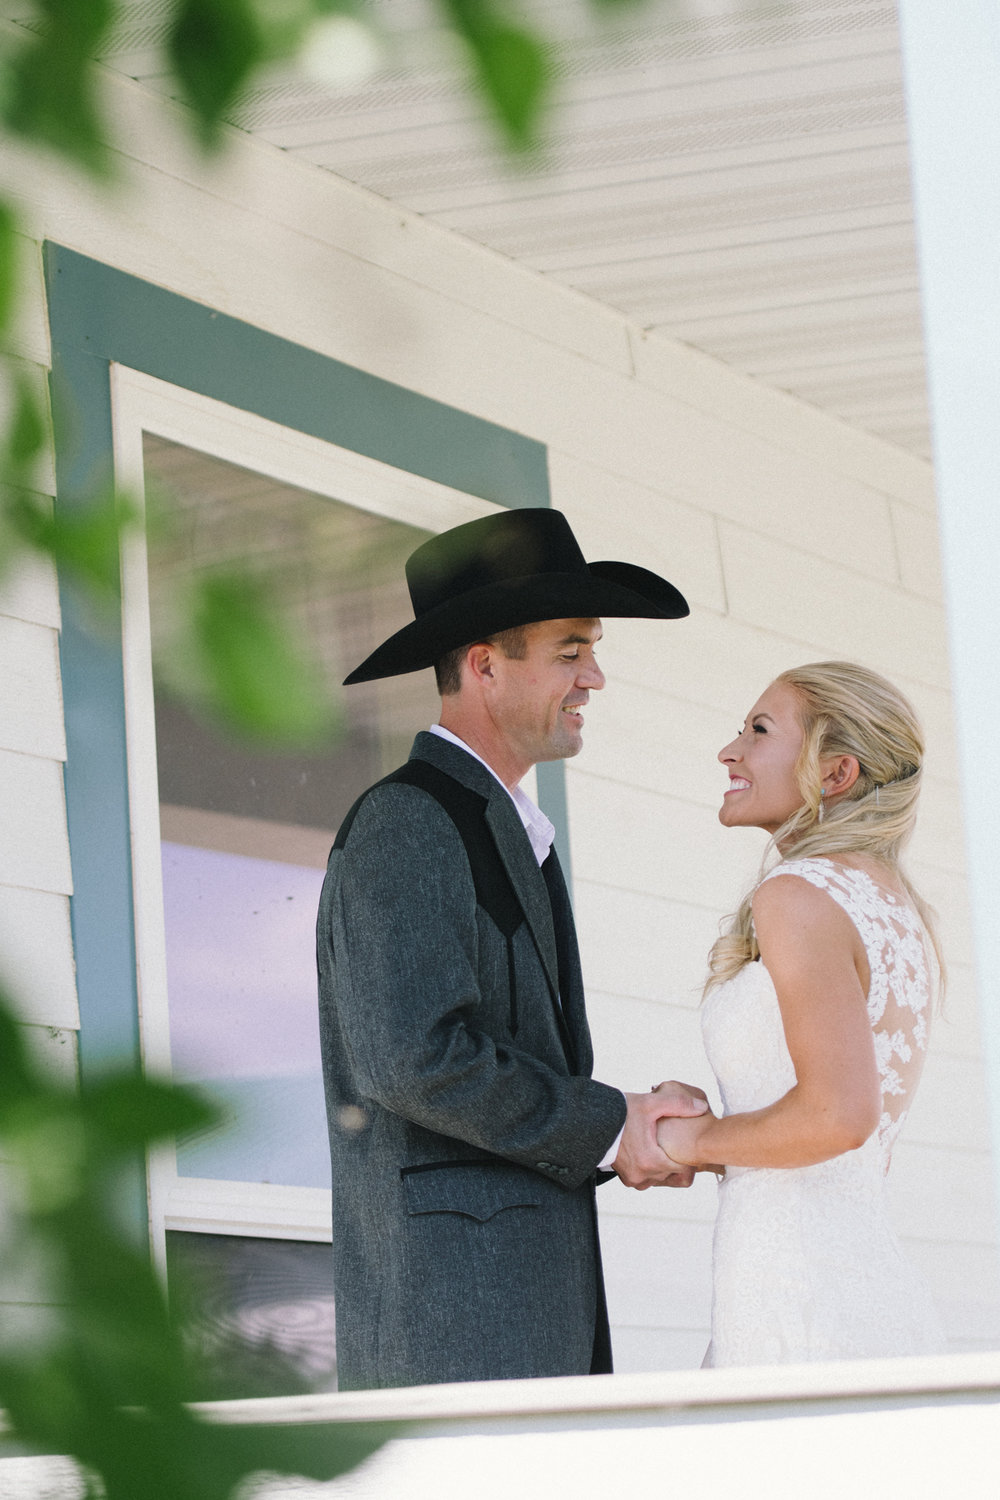 Erica Lind + Jeff Heim Wedding_Rustic Wedding_Montana Wedding_Kelsey Lane Photography-4119-3.jpg